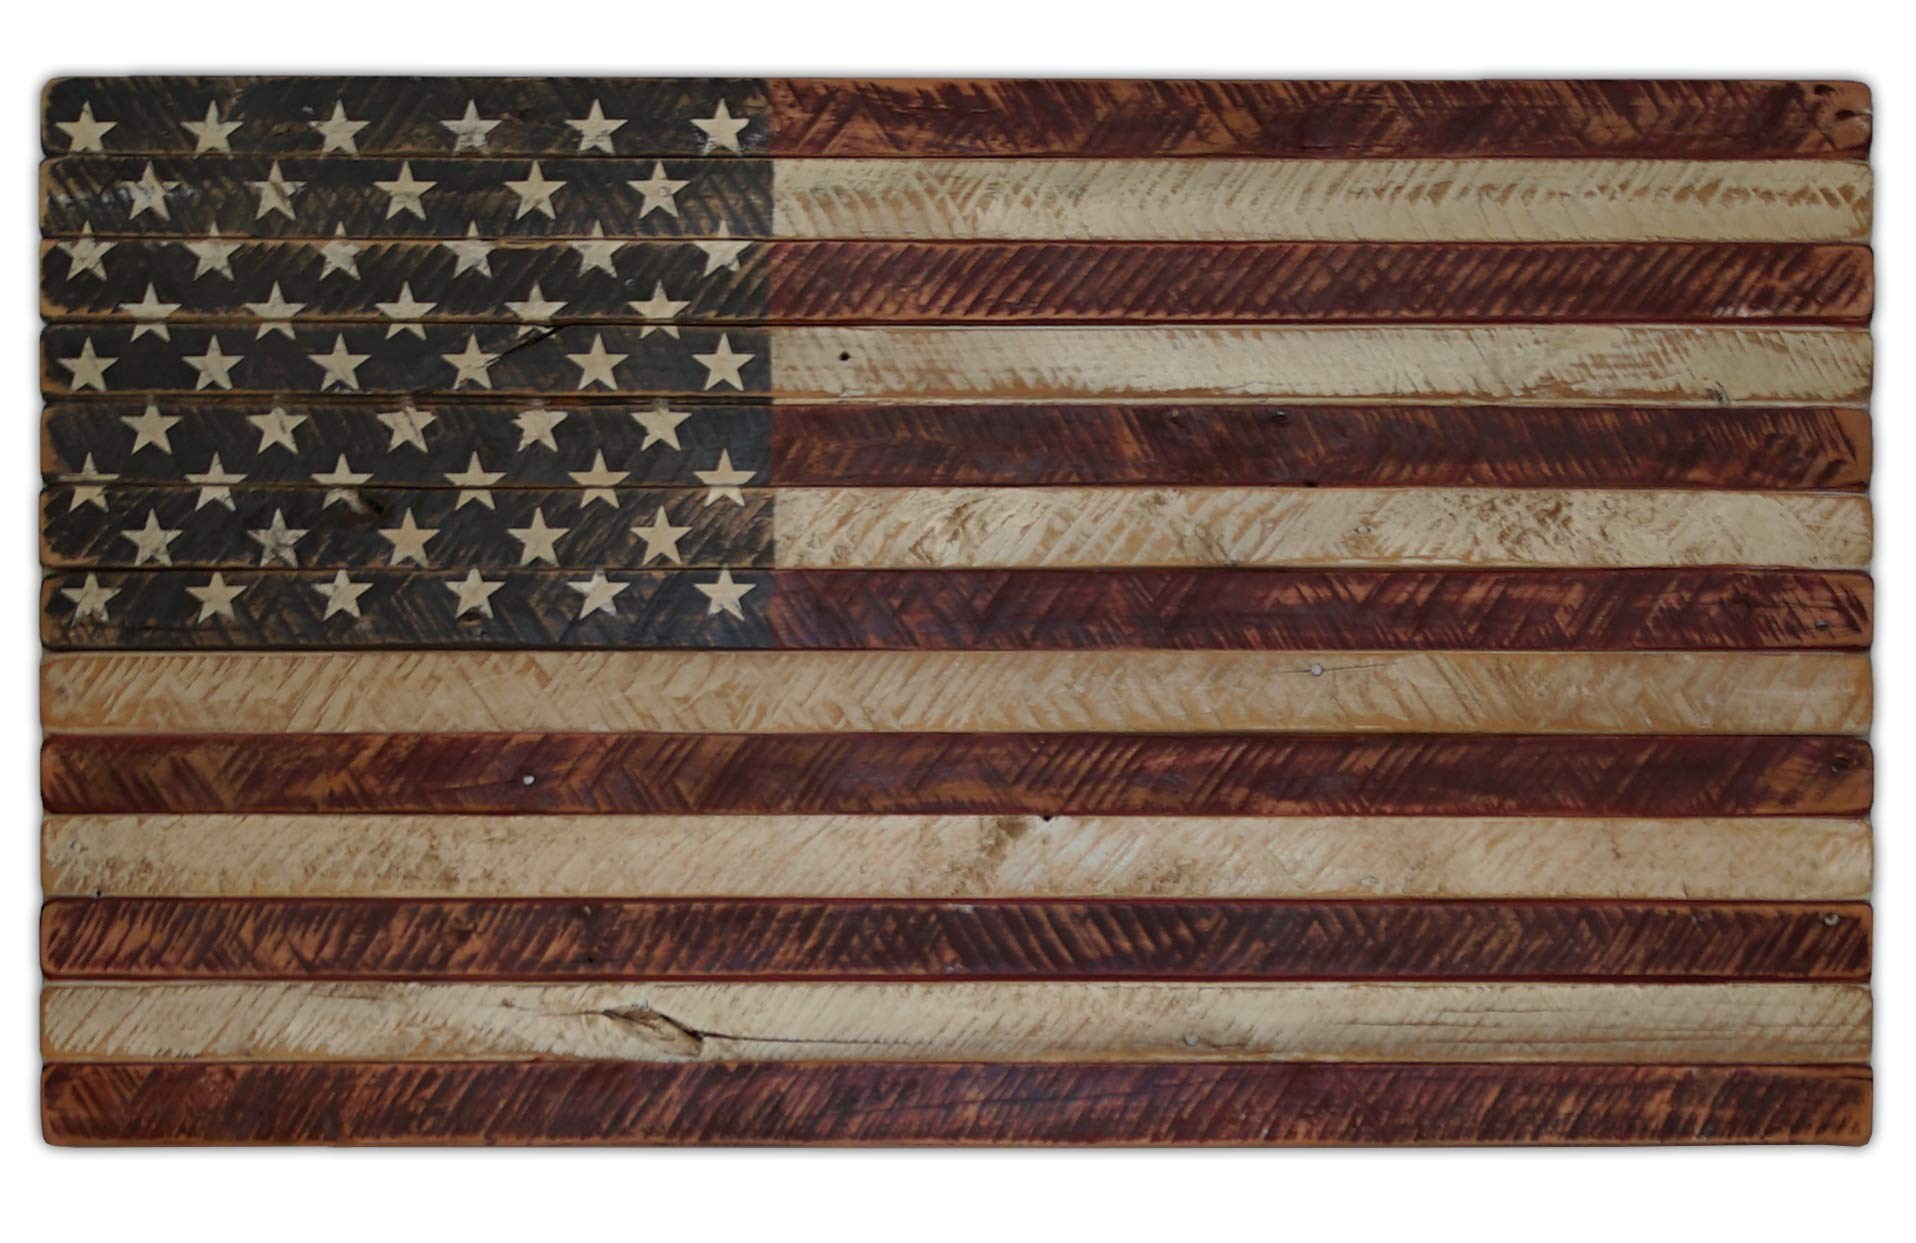 American Echoes Vintage United States Flag Wall Art Authentic 13 Stripes 50 Stars US - Handcrafted Patriotic Wall Décor Made in USA (42'' X 24'')